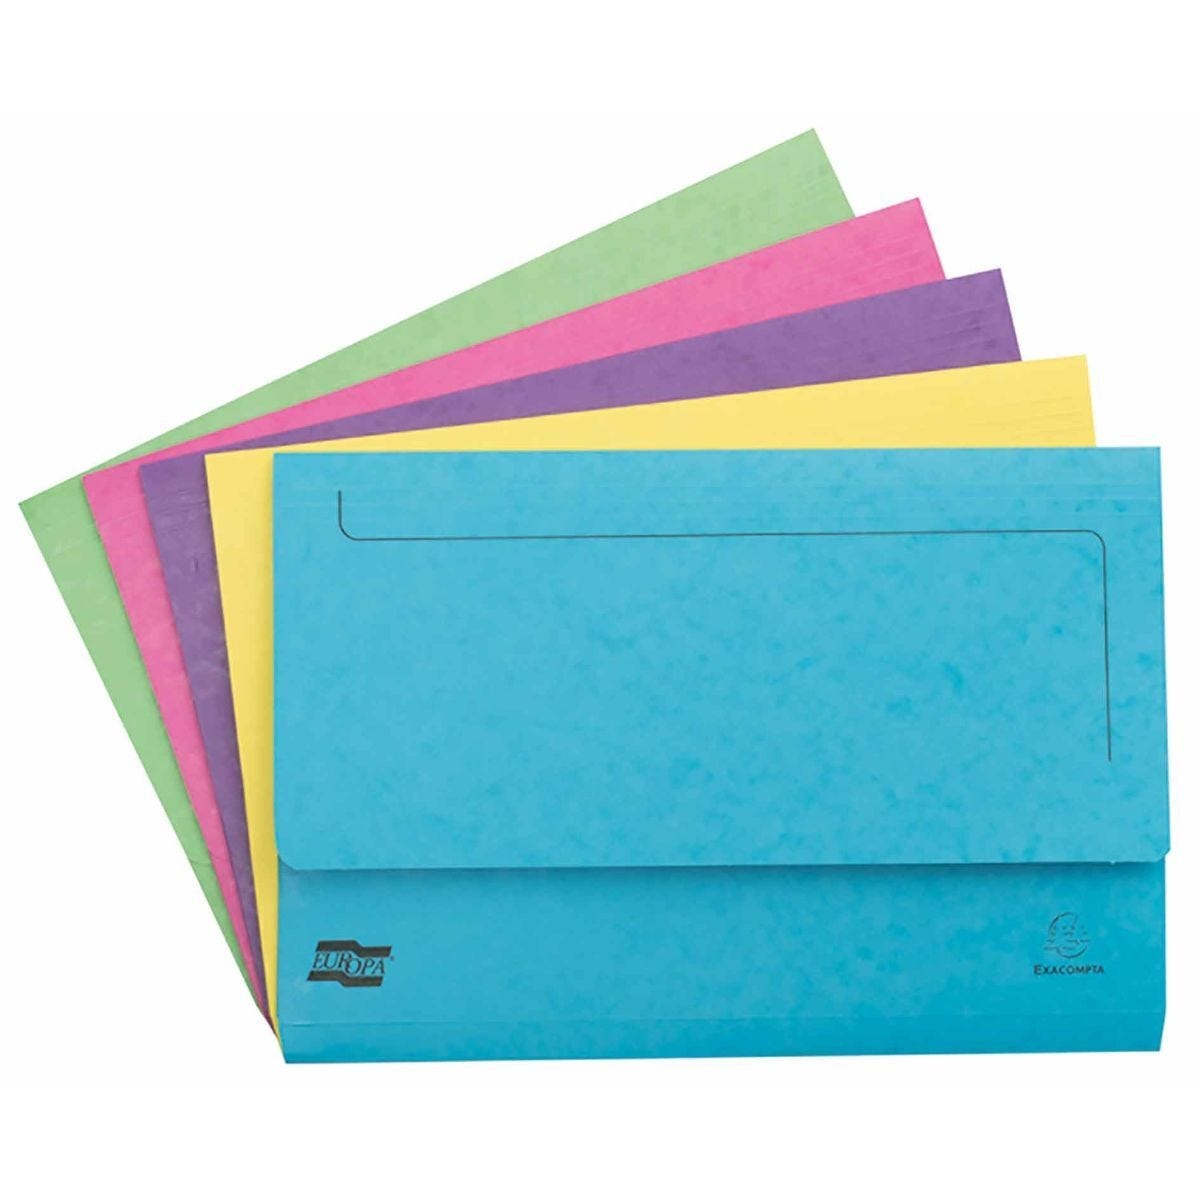 Exacompta Europa Document Wallet Foolscap Pack of 25 265gsm Assorted